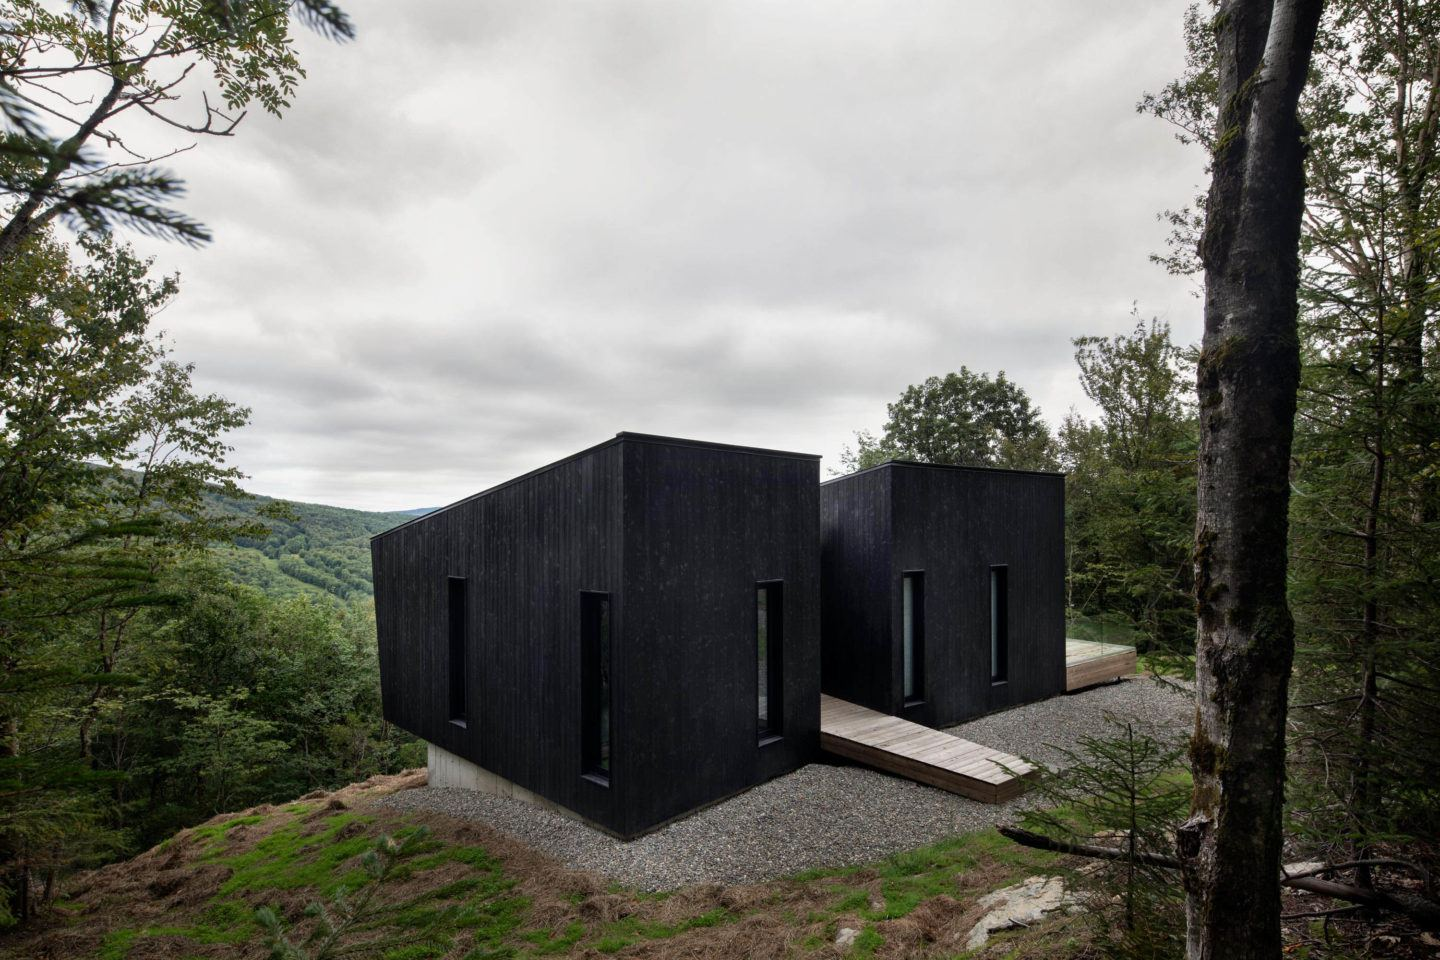 IGNANT-Architecture-Nature-Humaine-La-Bionocle-Cabin-6